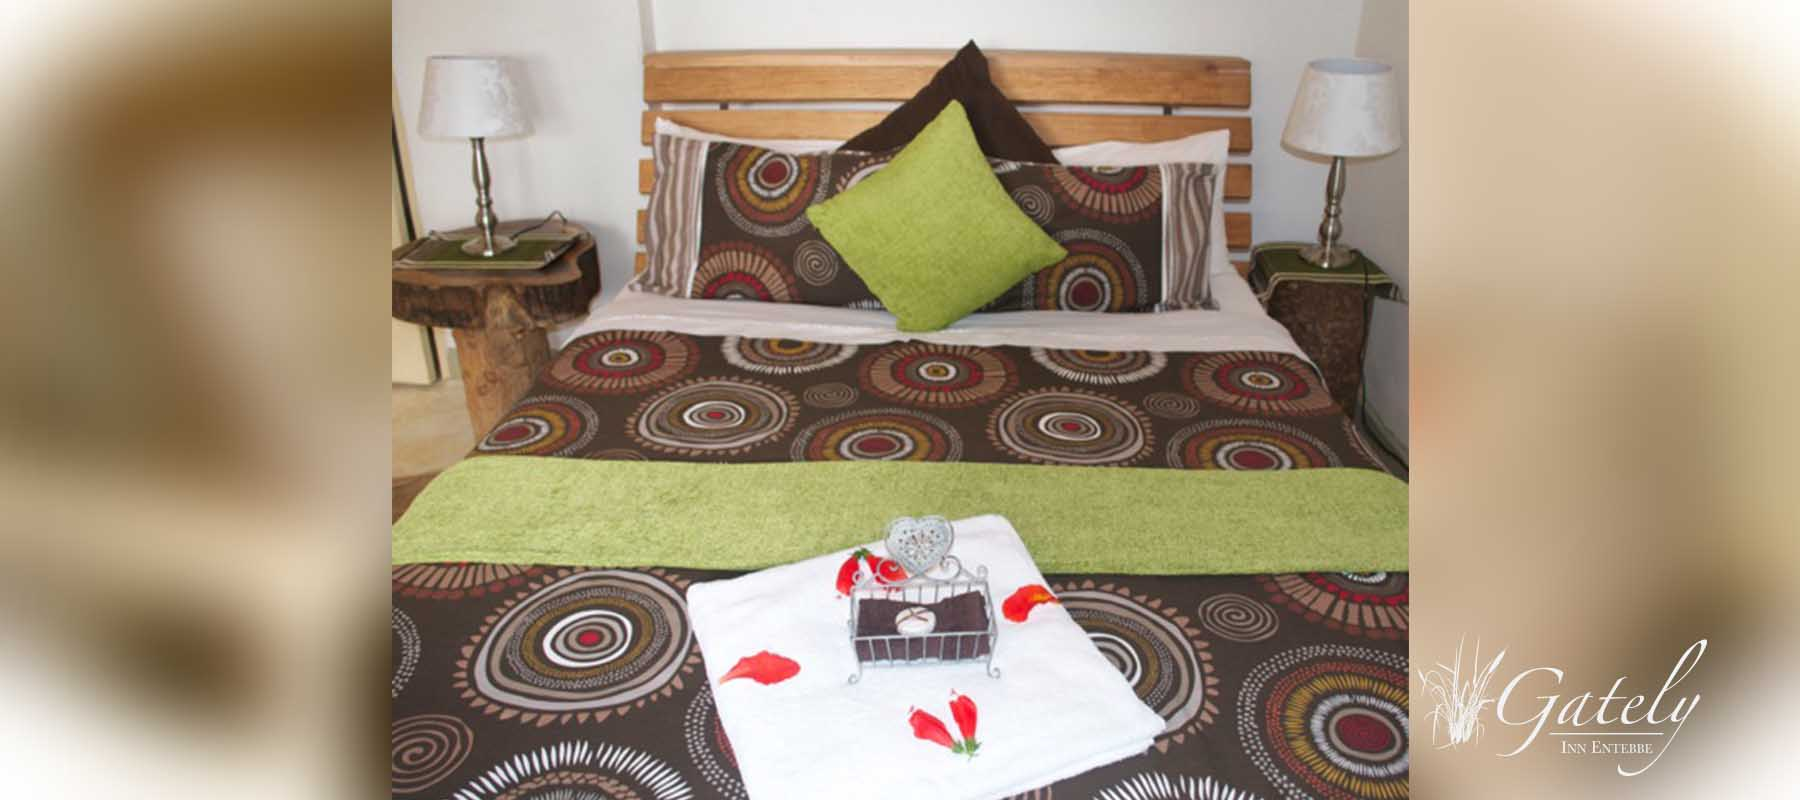 gately-entebbe-guestroom-accommodation-13